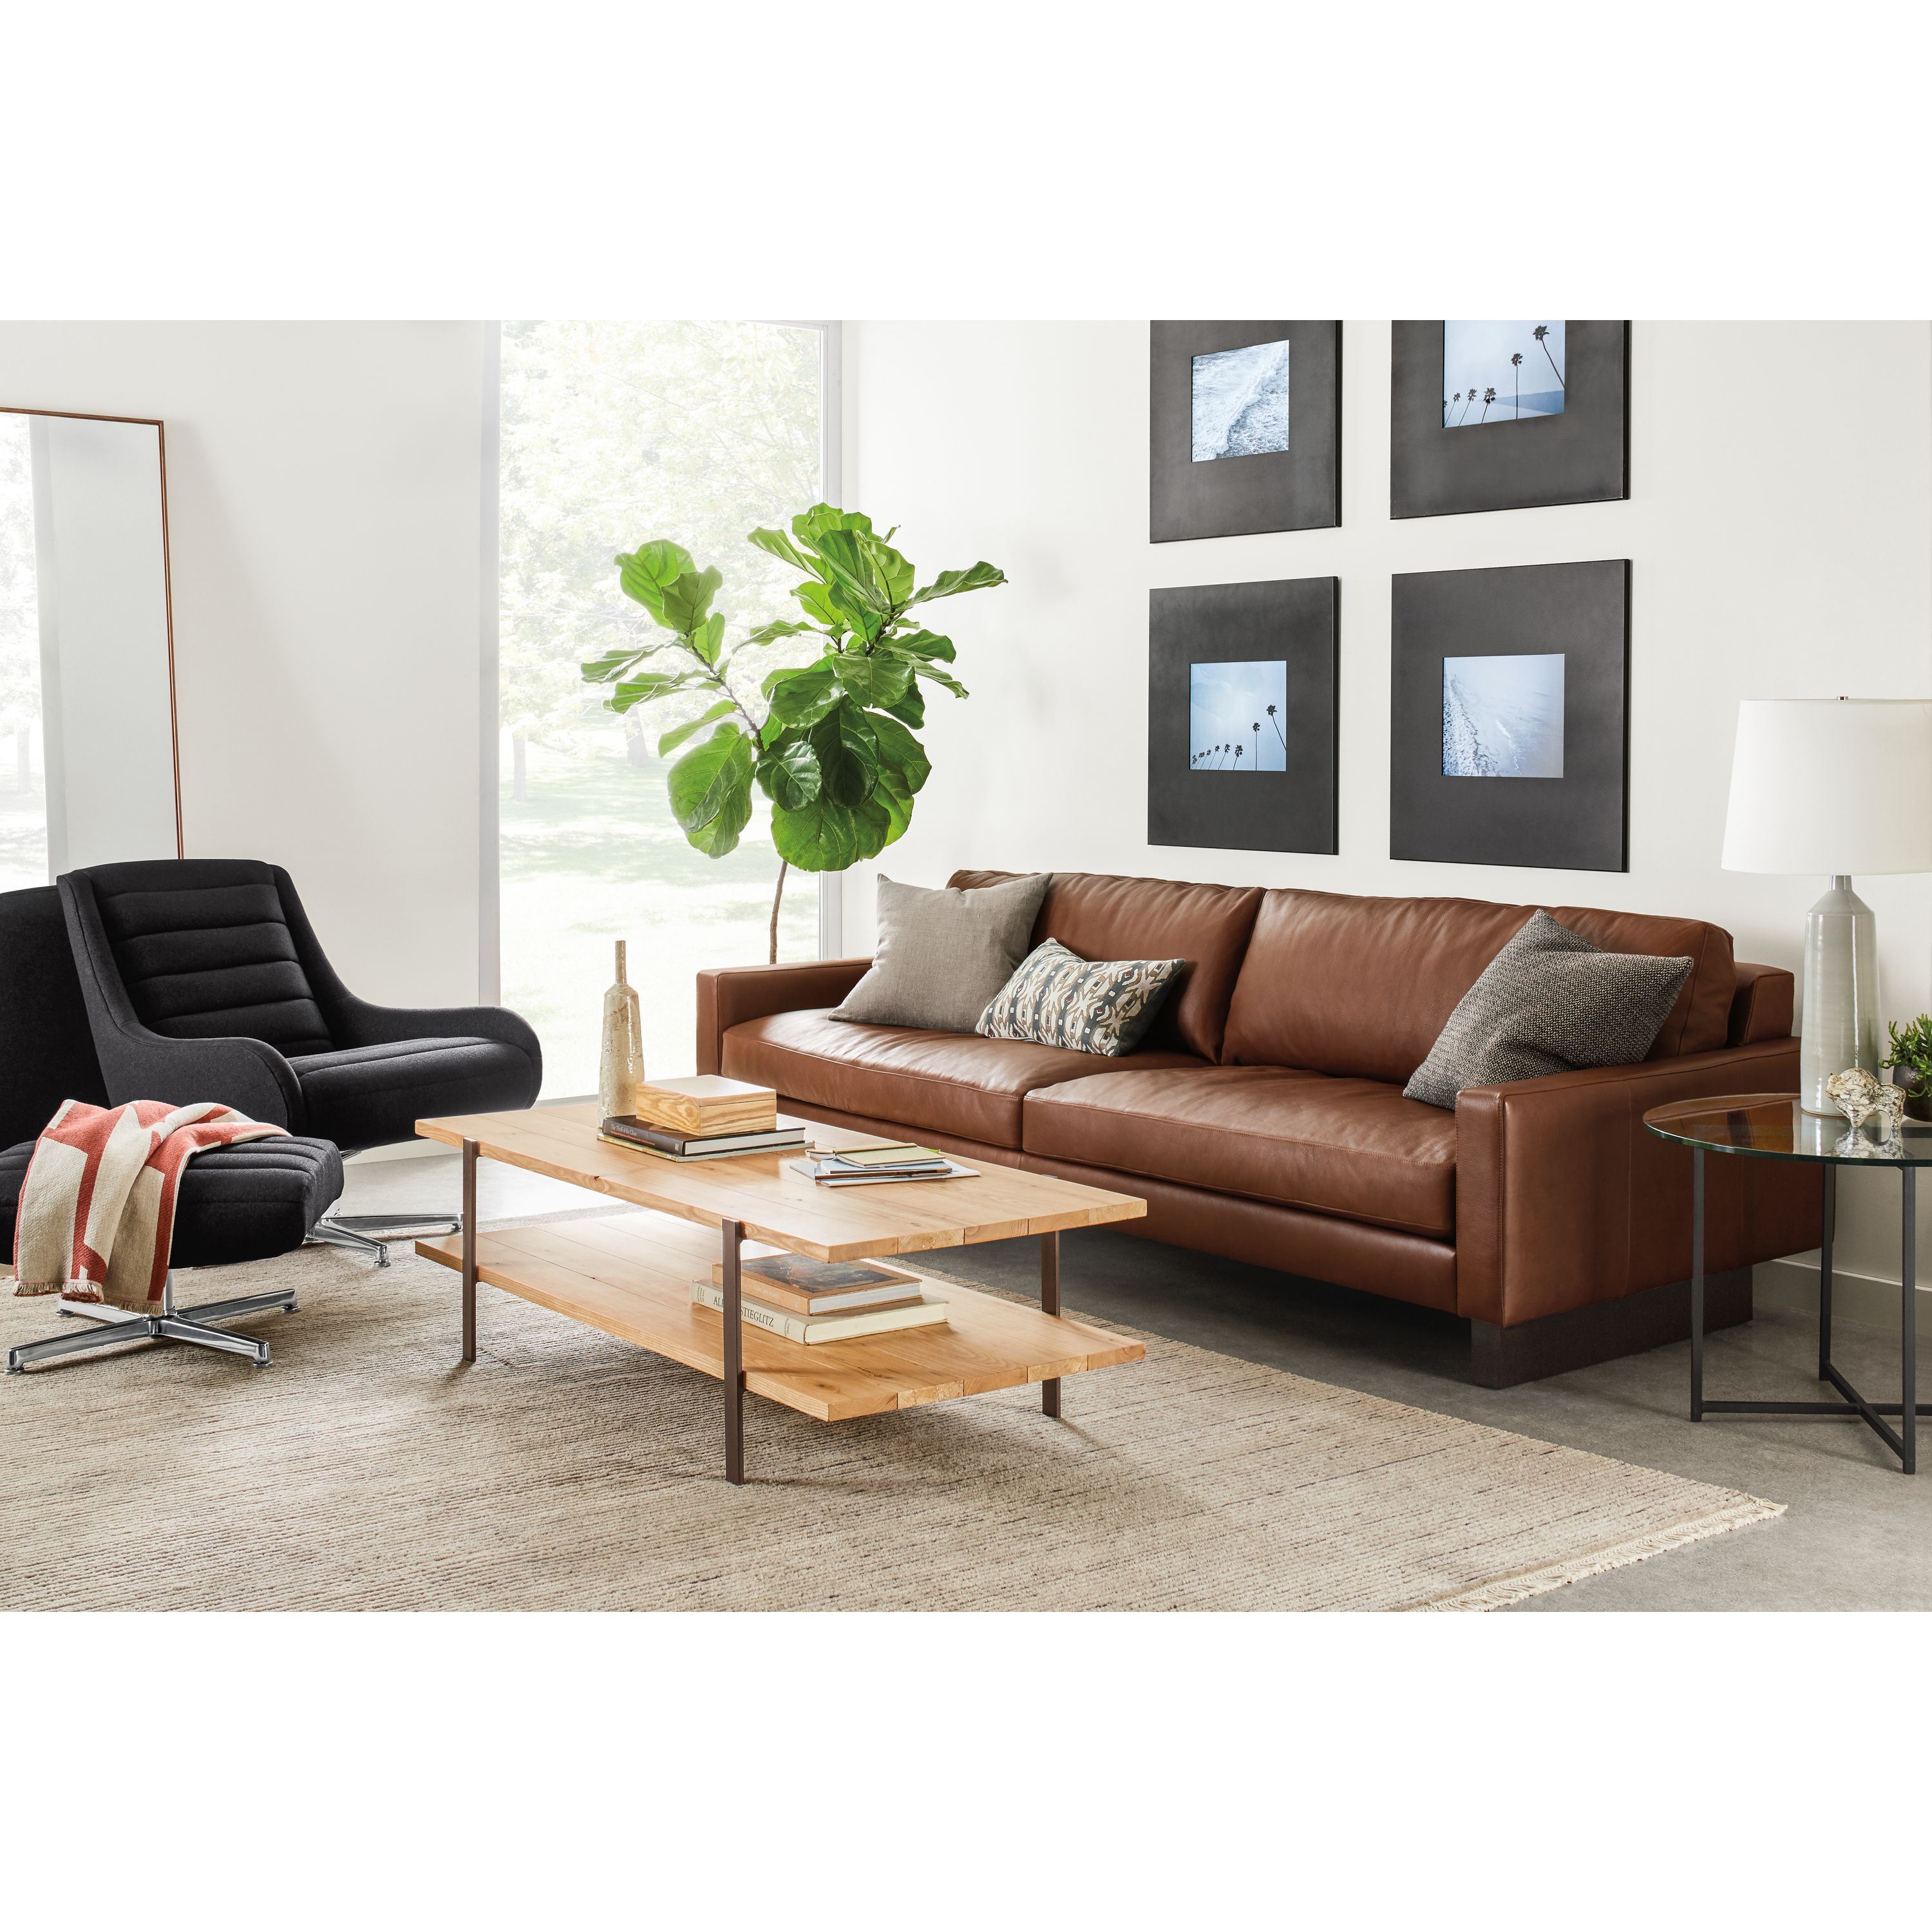 hess leather sofas products moderno rh ar pinterest com